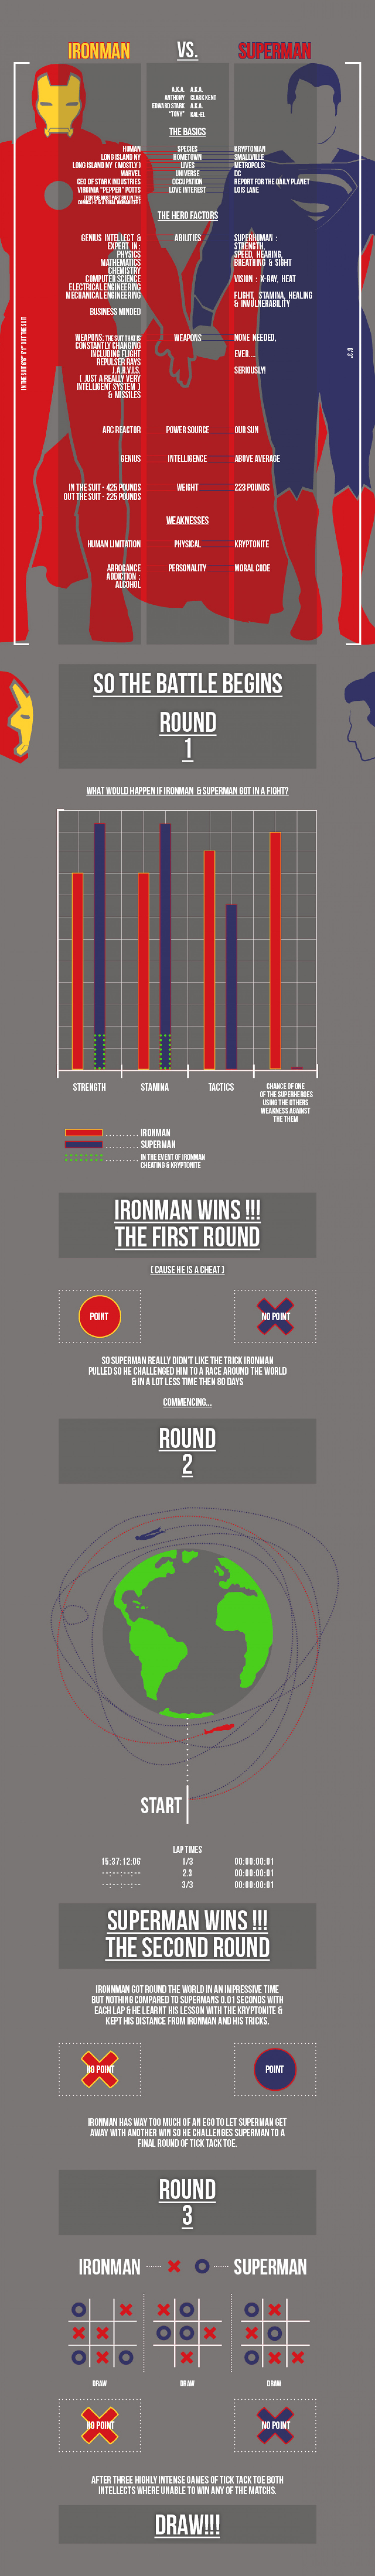 Ironman vs. Superman Infographic